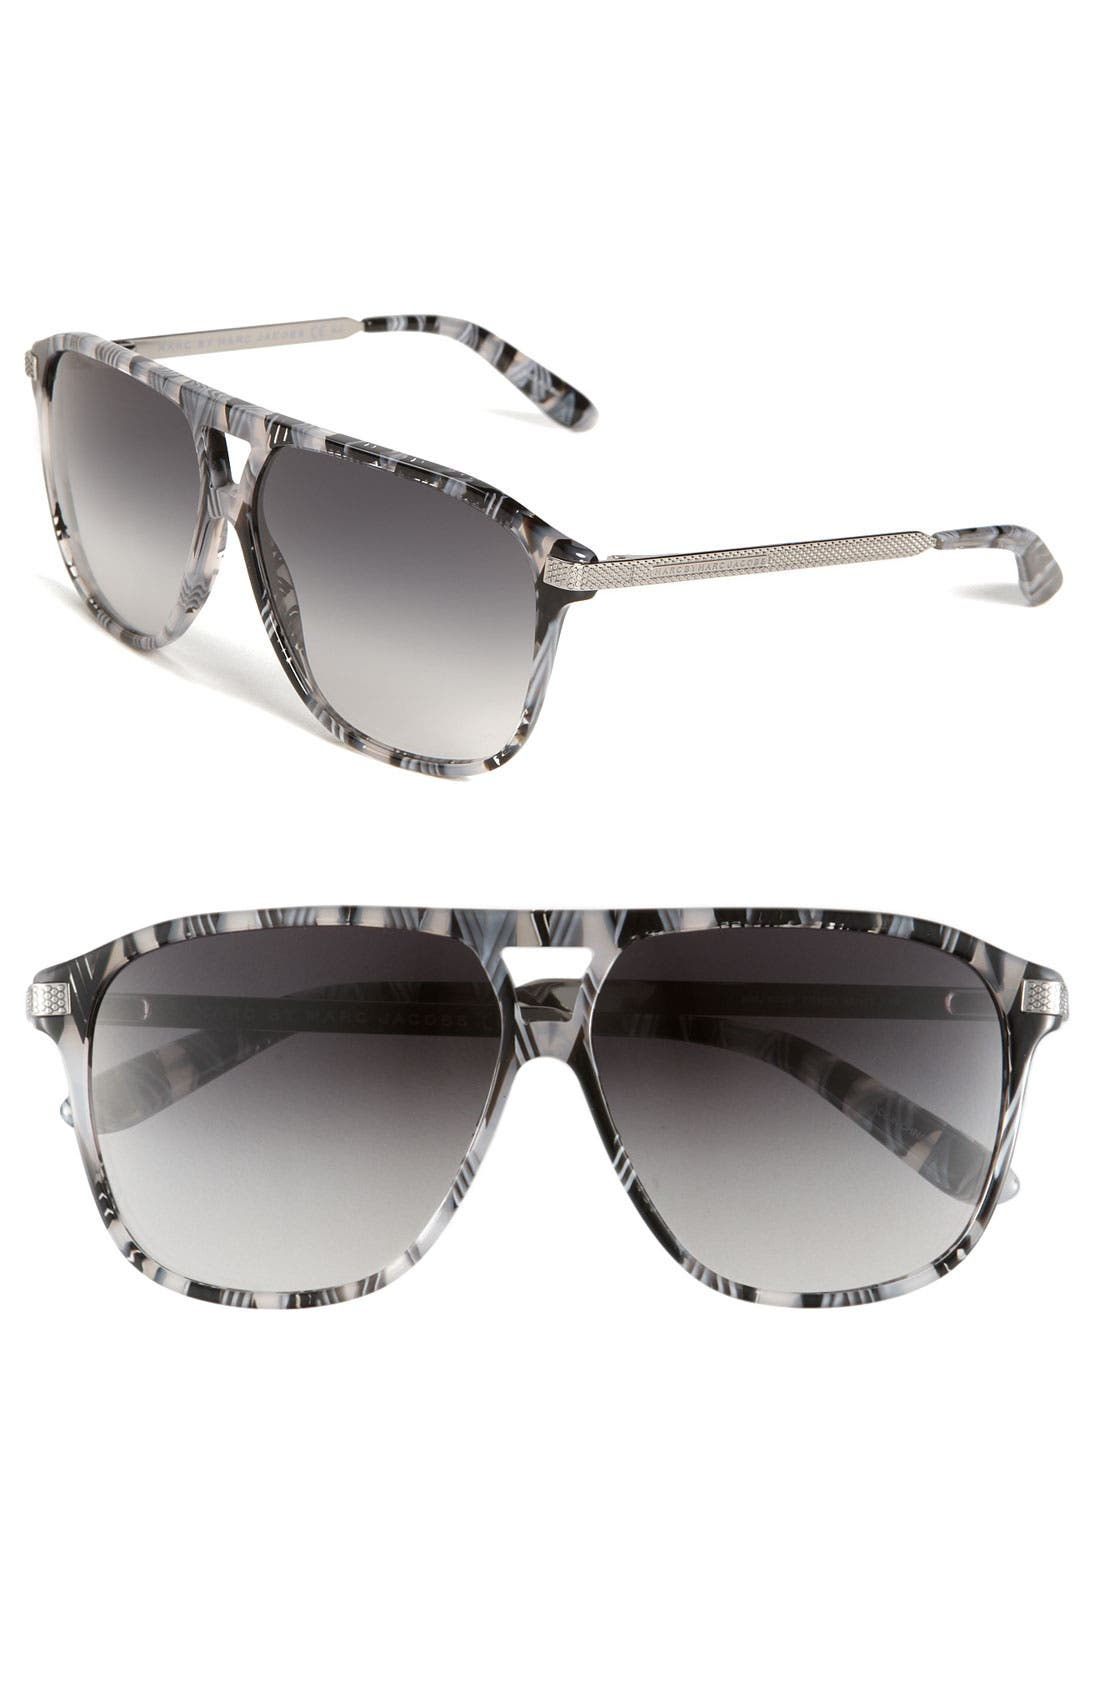 Alternate Image 1 Selected - MARC BY MARC JACOBS 'International Collection' Sunglasses